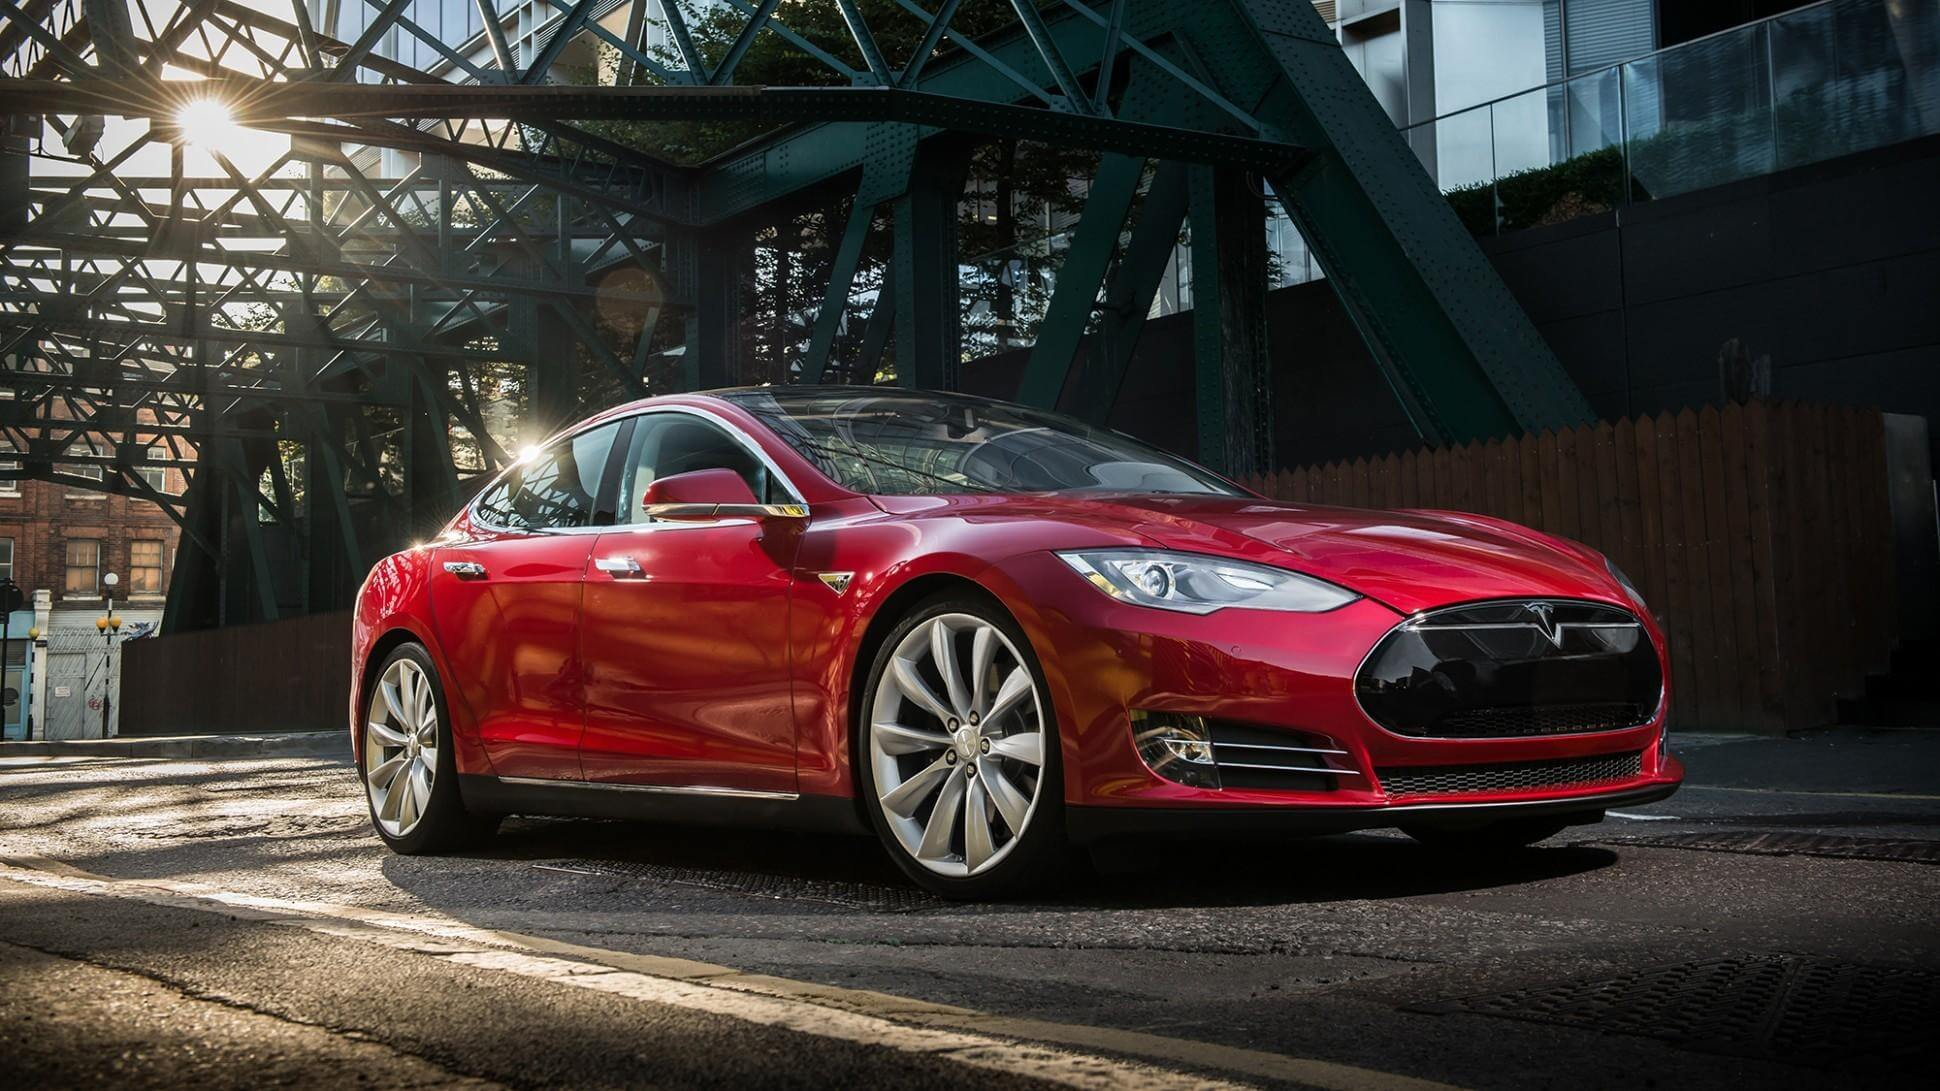 Watch thieves steal a Tesla Model S with a key fob hack